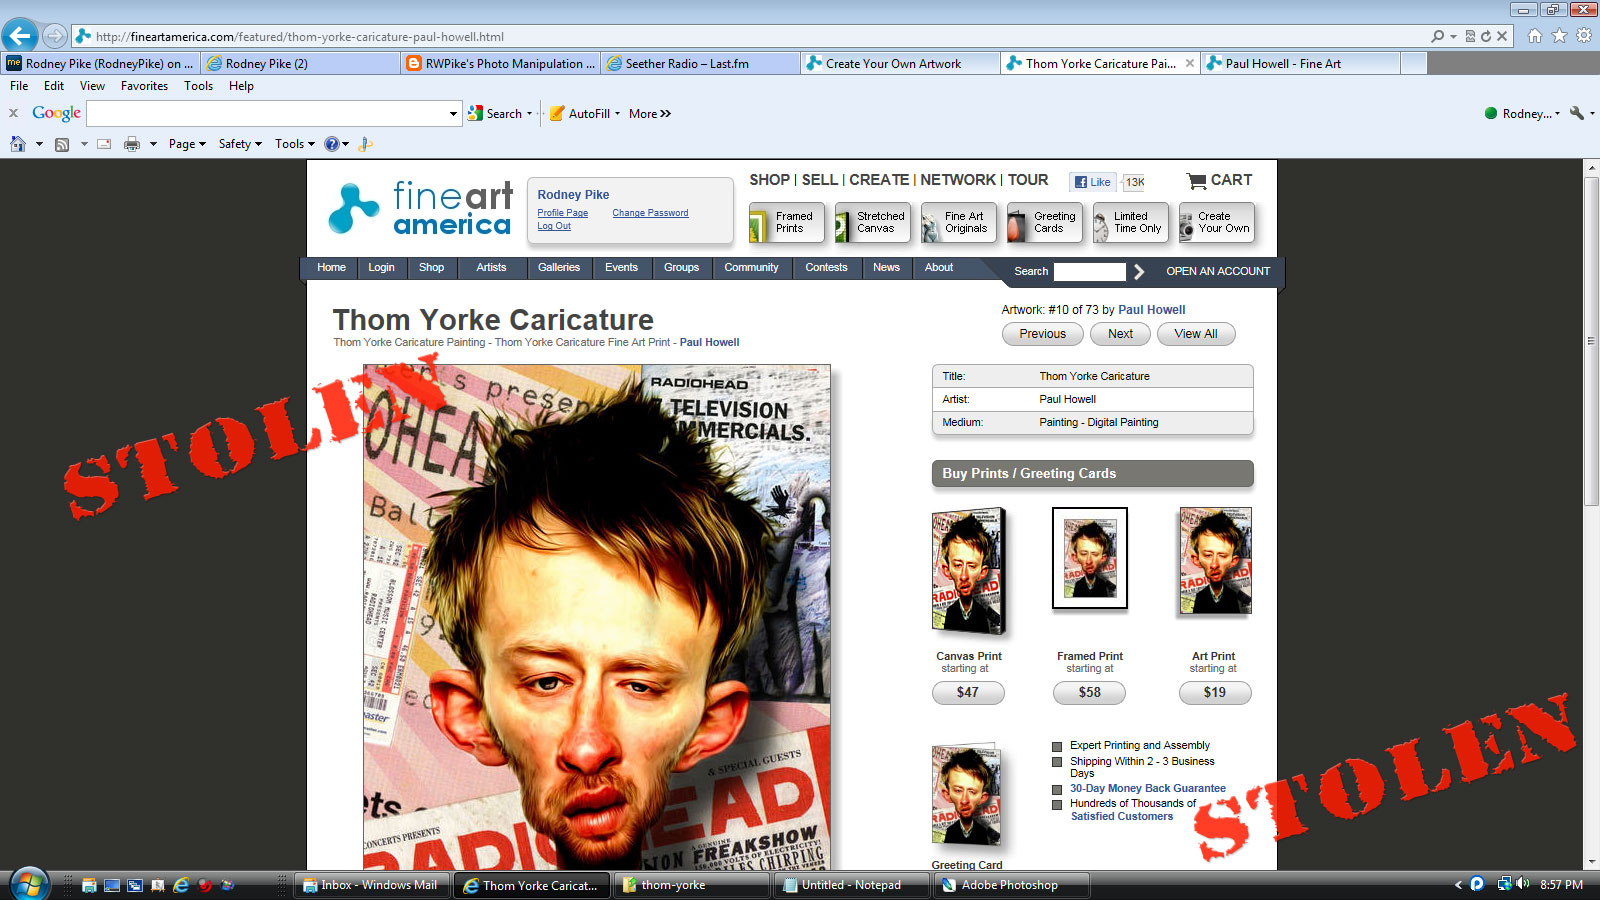 My Thom Yorke caricature for sale!